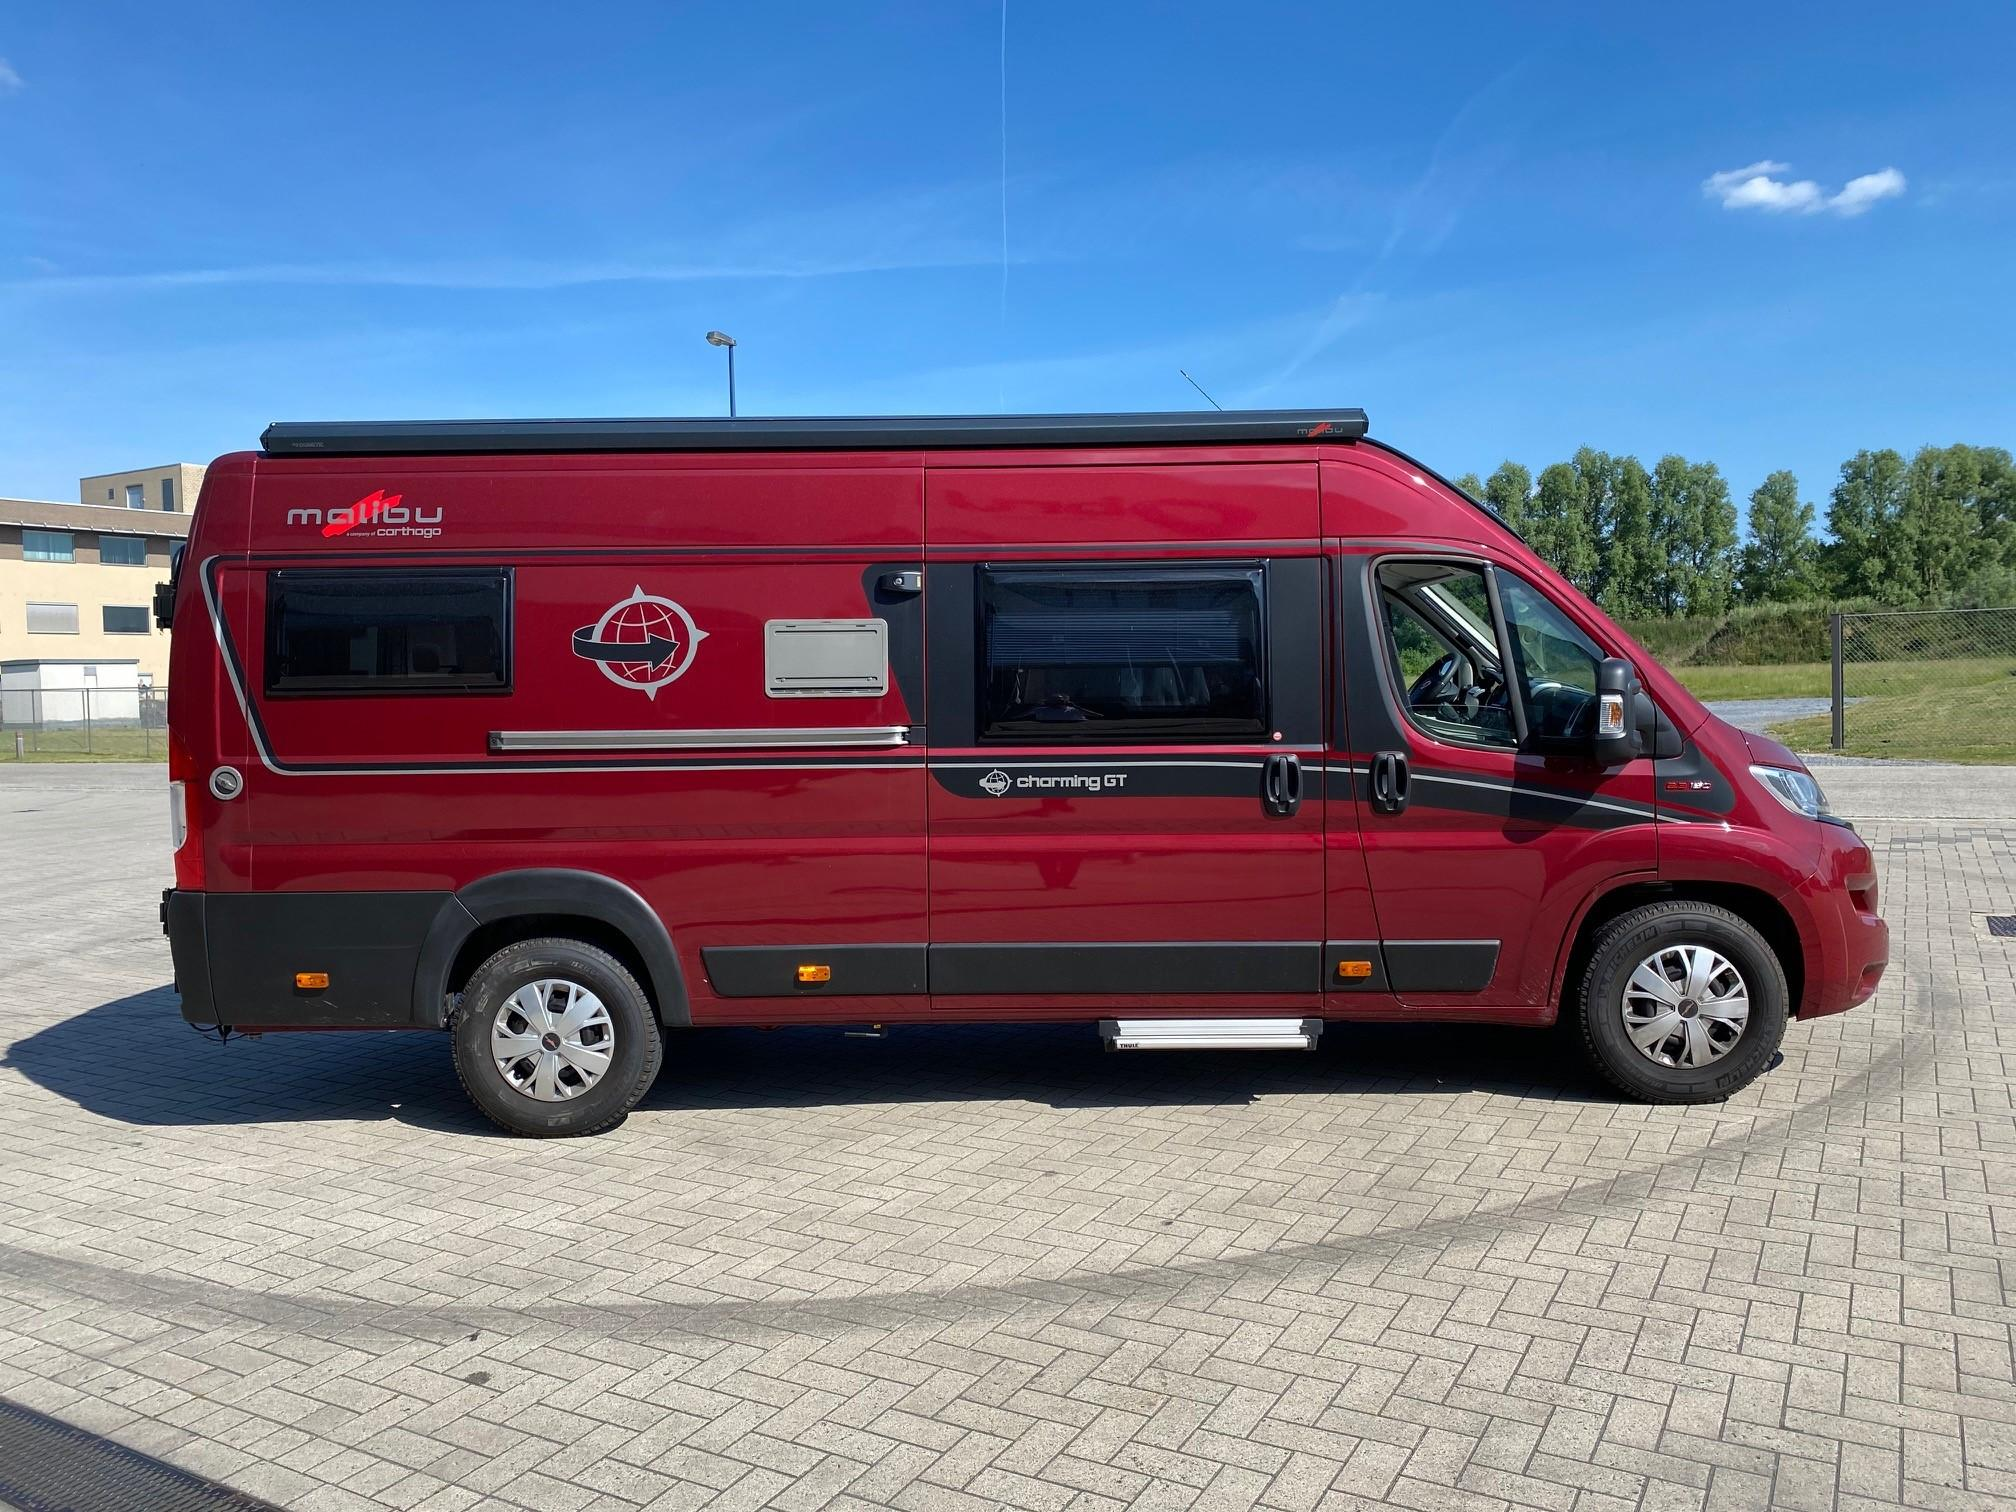 Luchtverinv voor Carthago Malibu camper | Trapmann Air Suspension